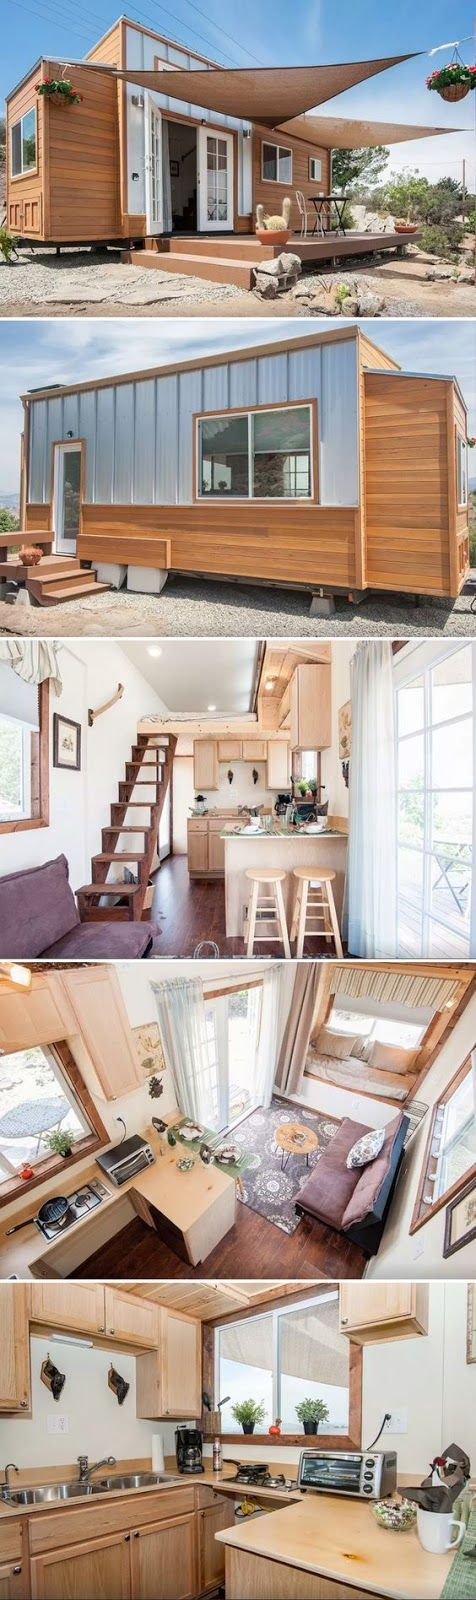 mytinyhousedirectory: Tiny Houses by The Zen Cottages